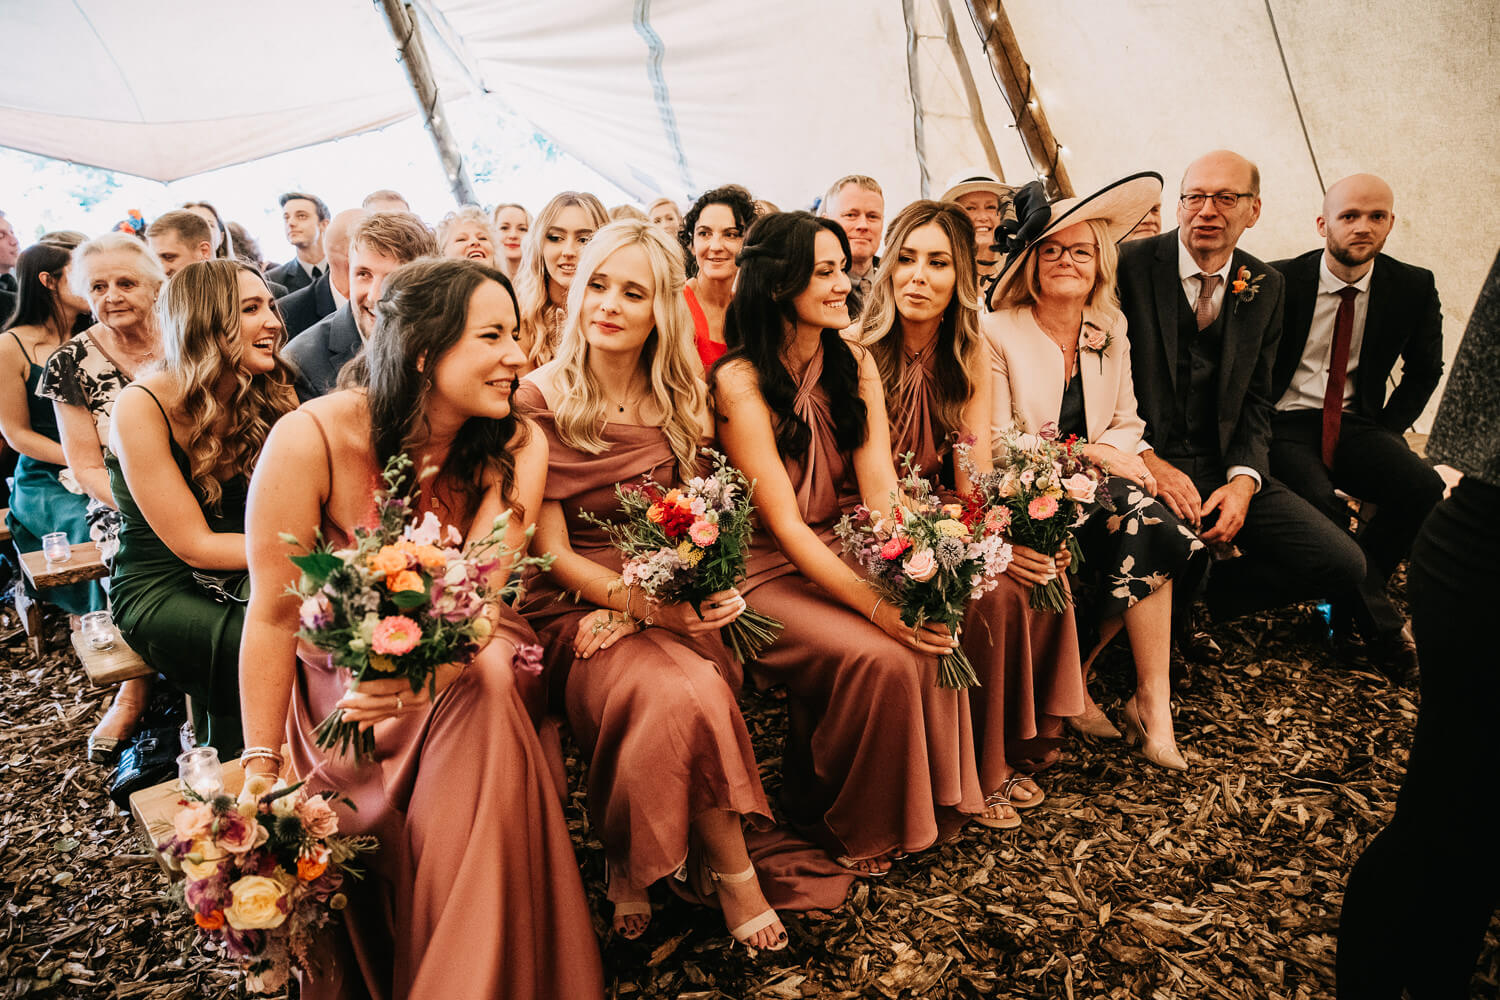 Bridesmaids at the outdoor ceremony